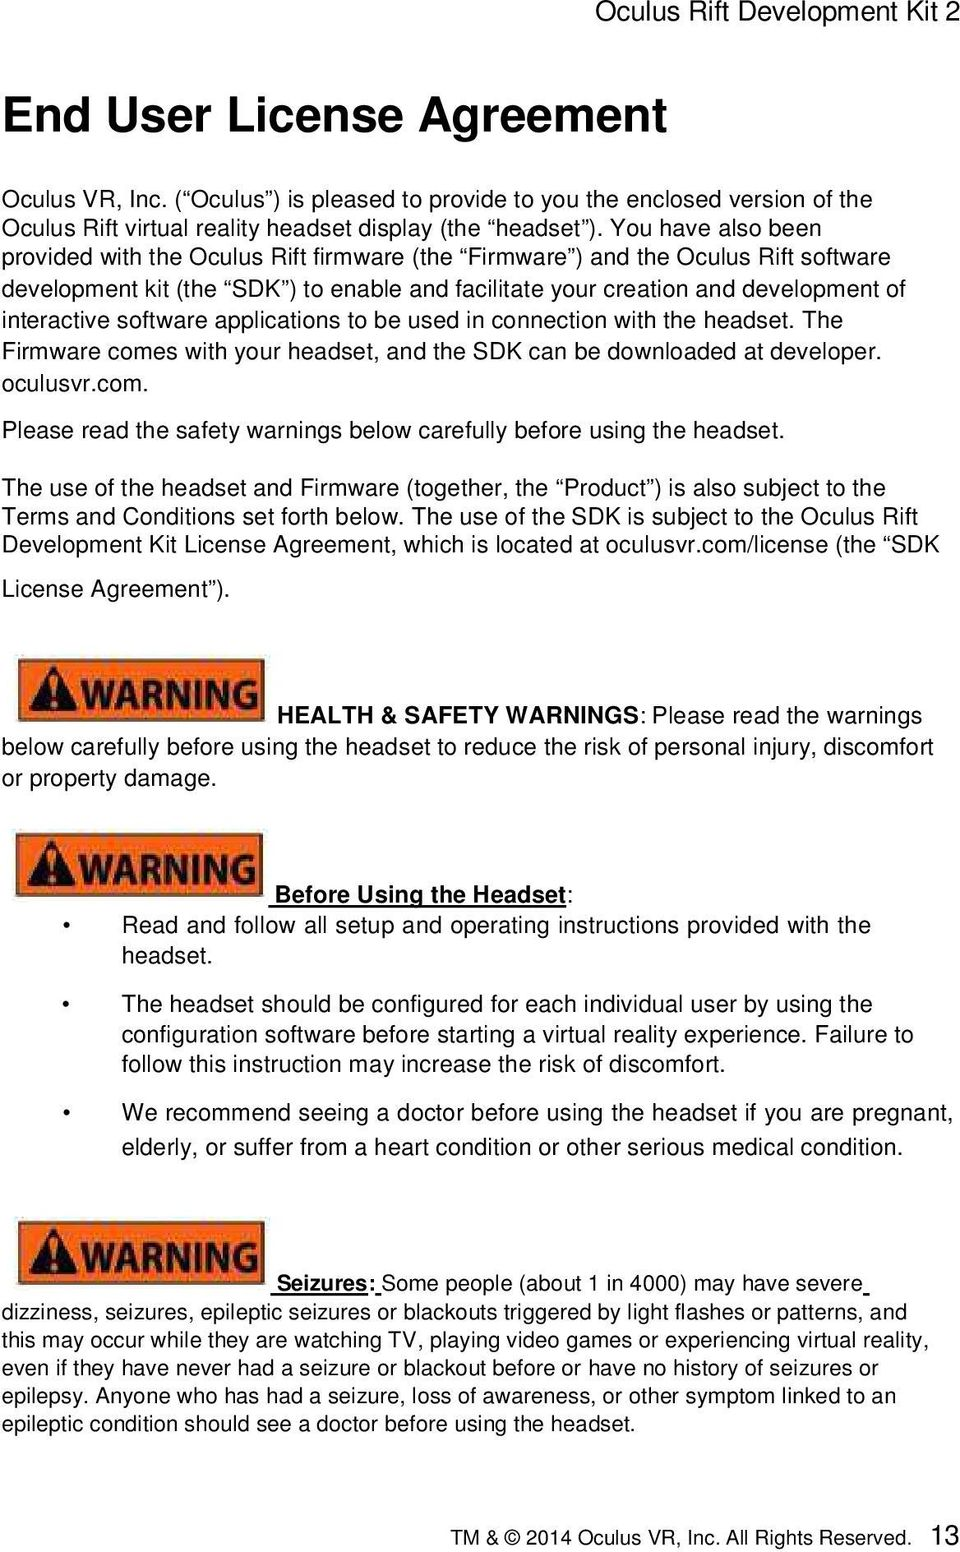 software applications to be used in connection with the headset. The Firmware comes with your headset, and the SDK can be downloaded at developer. oculusvr.com. Please read the safety warnings below carefully before using the headset.